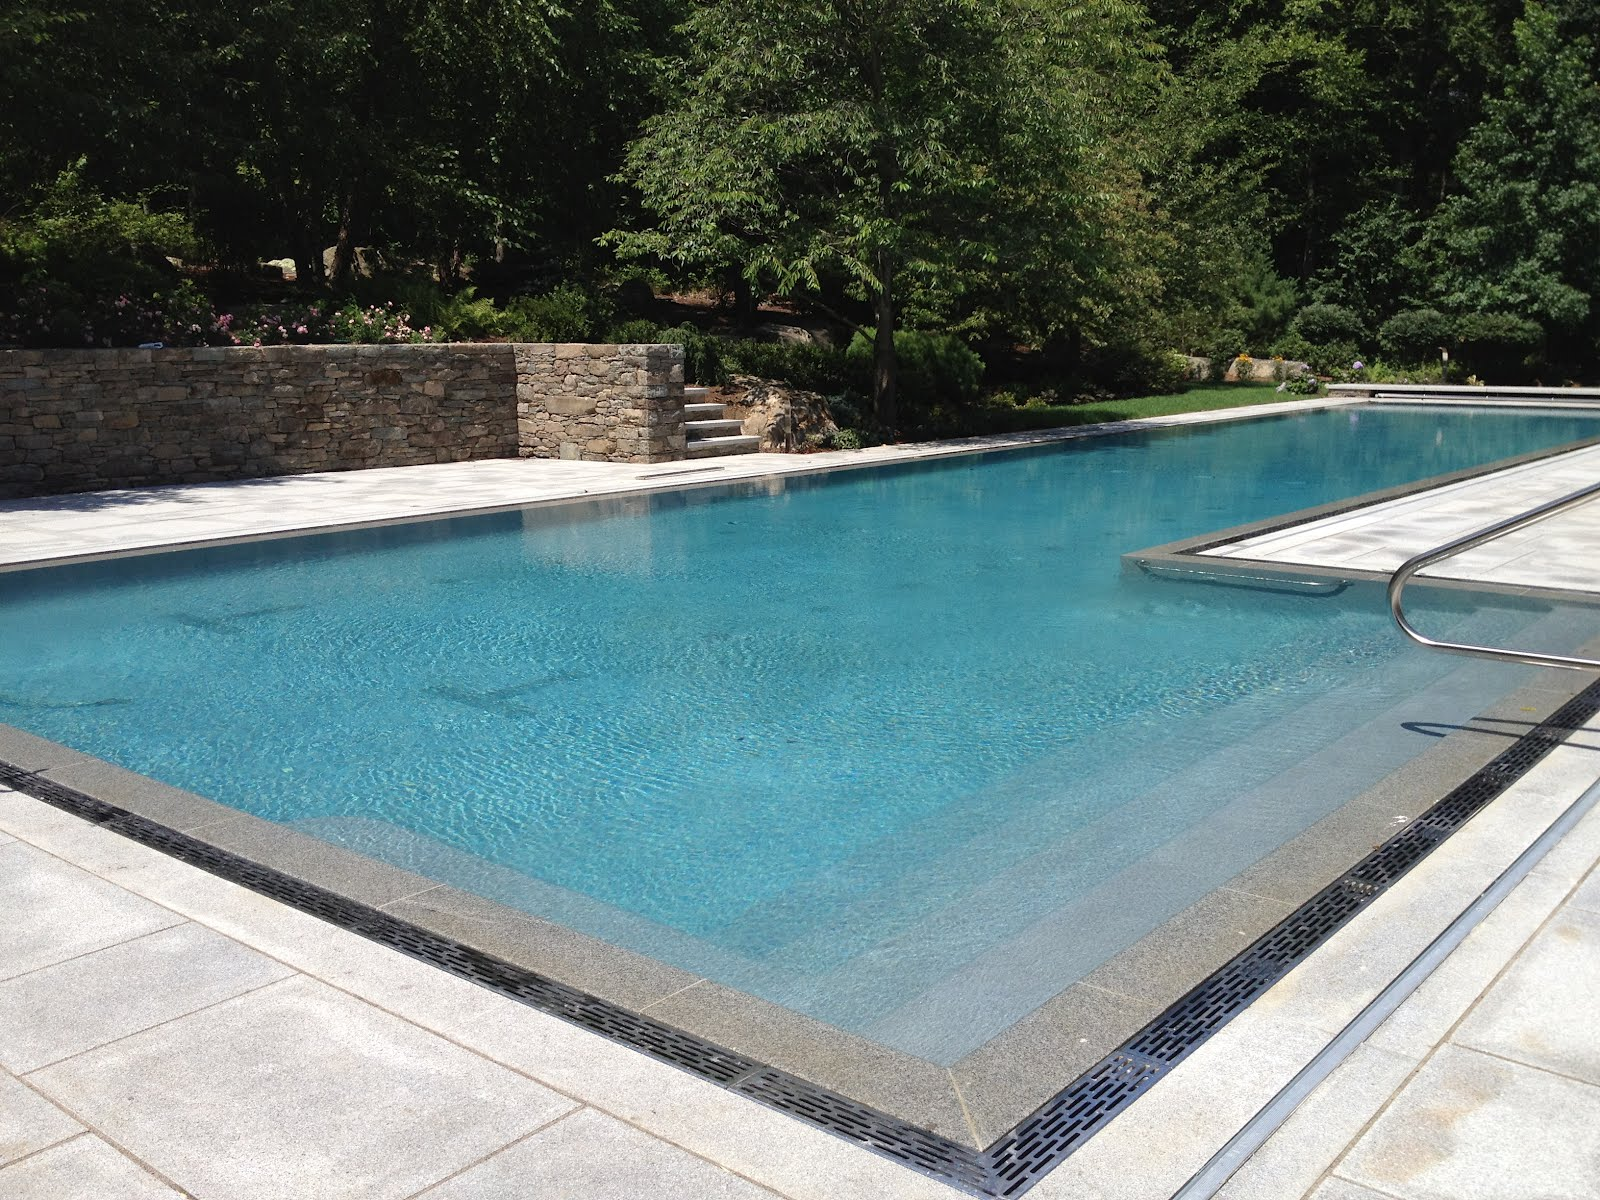 Aquaknot pools inc new residential swimming pool for New swimming pool